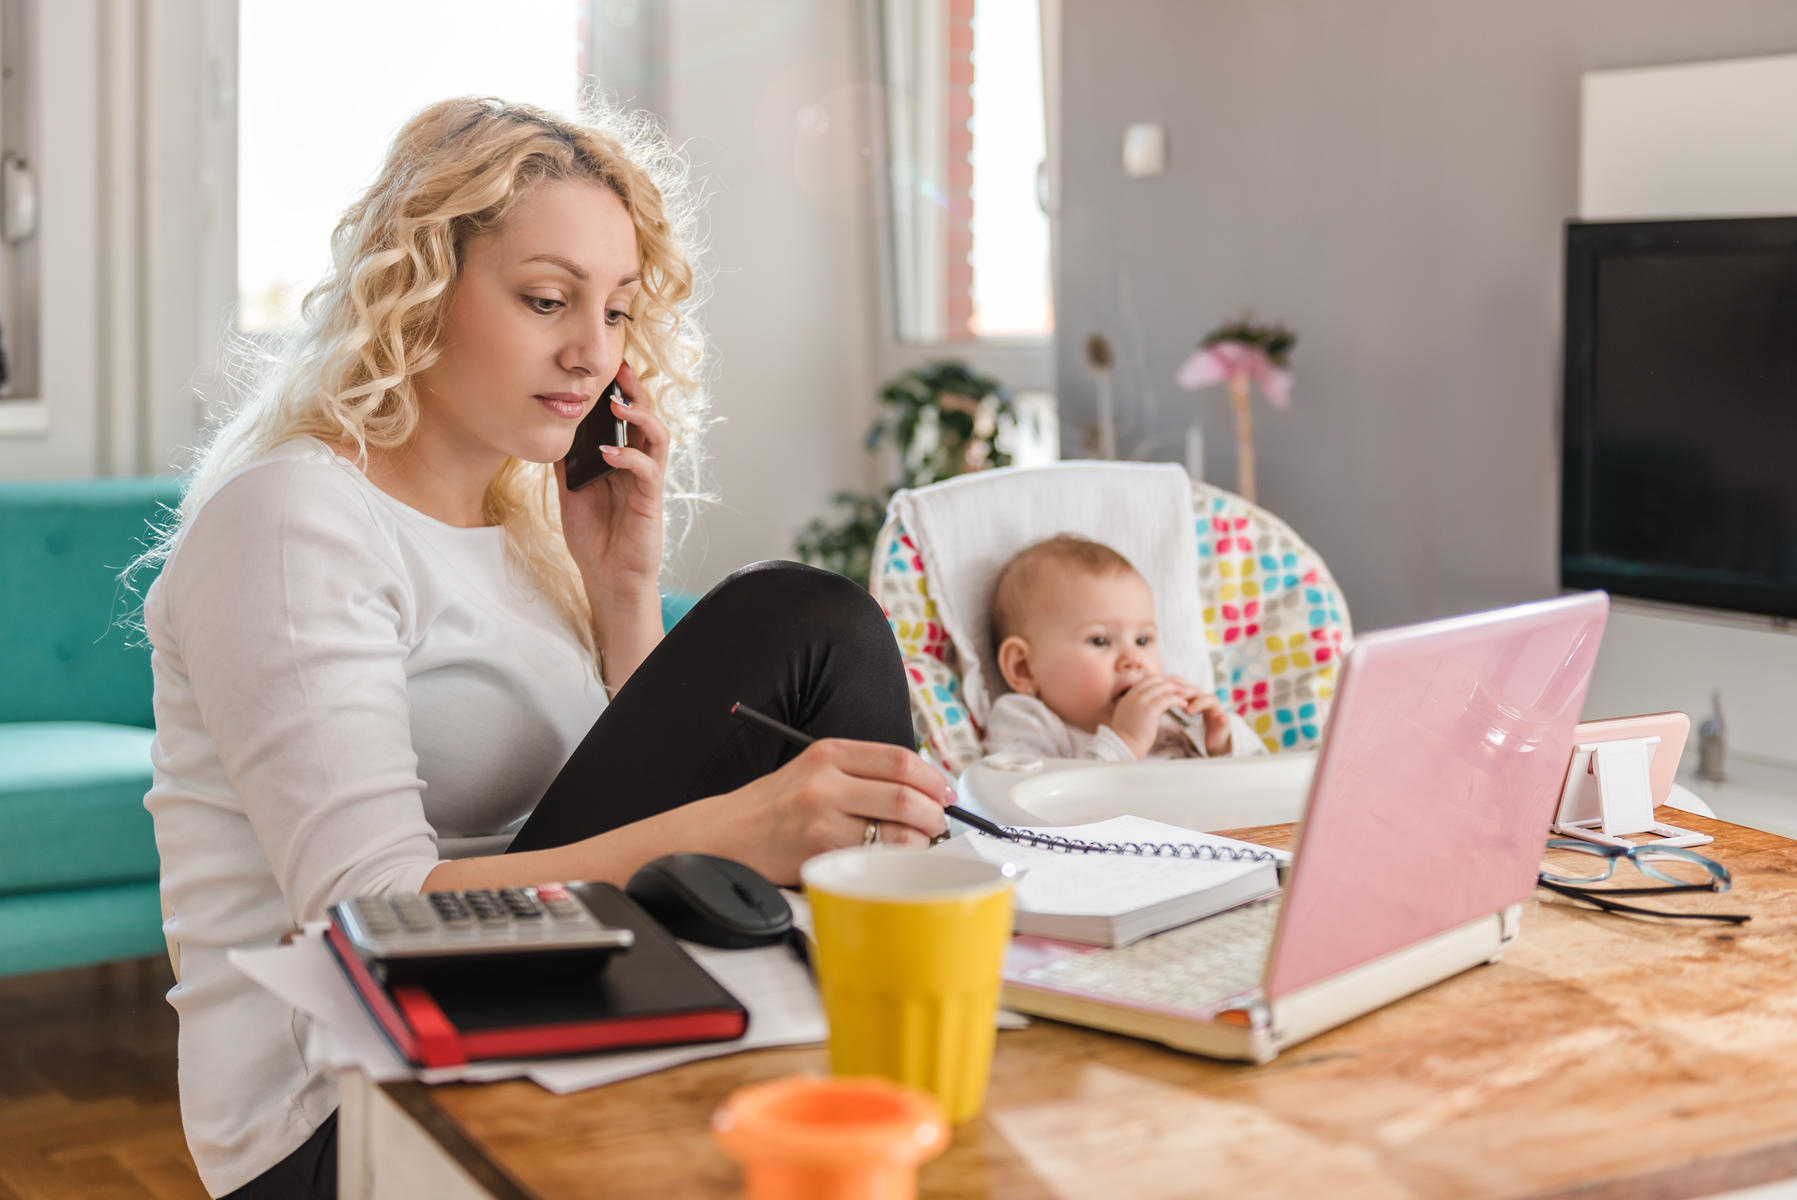 Mother Working From Home With Baby in High Chair